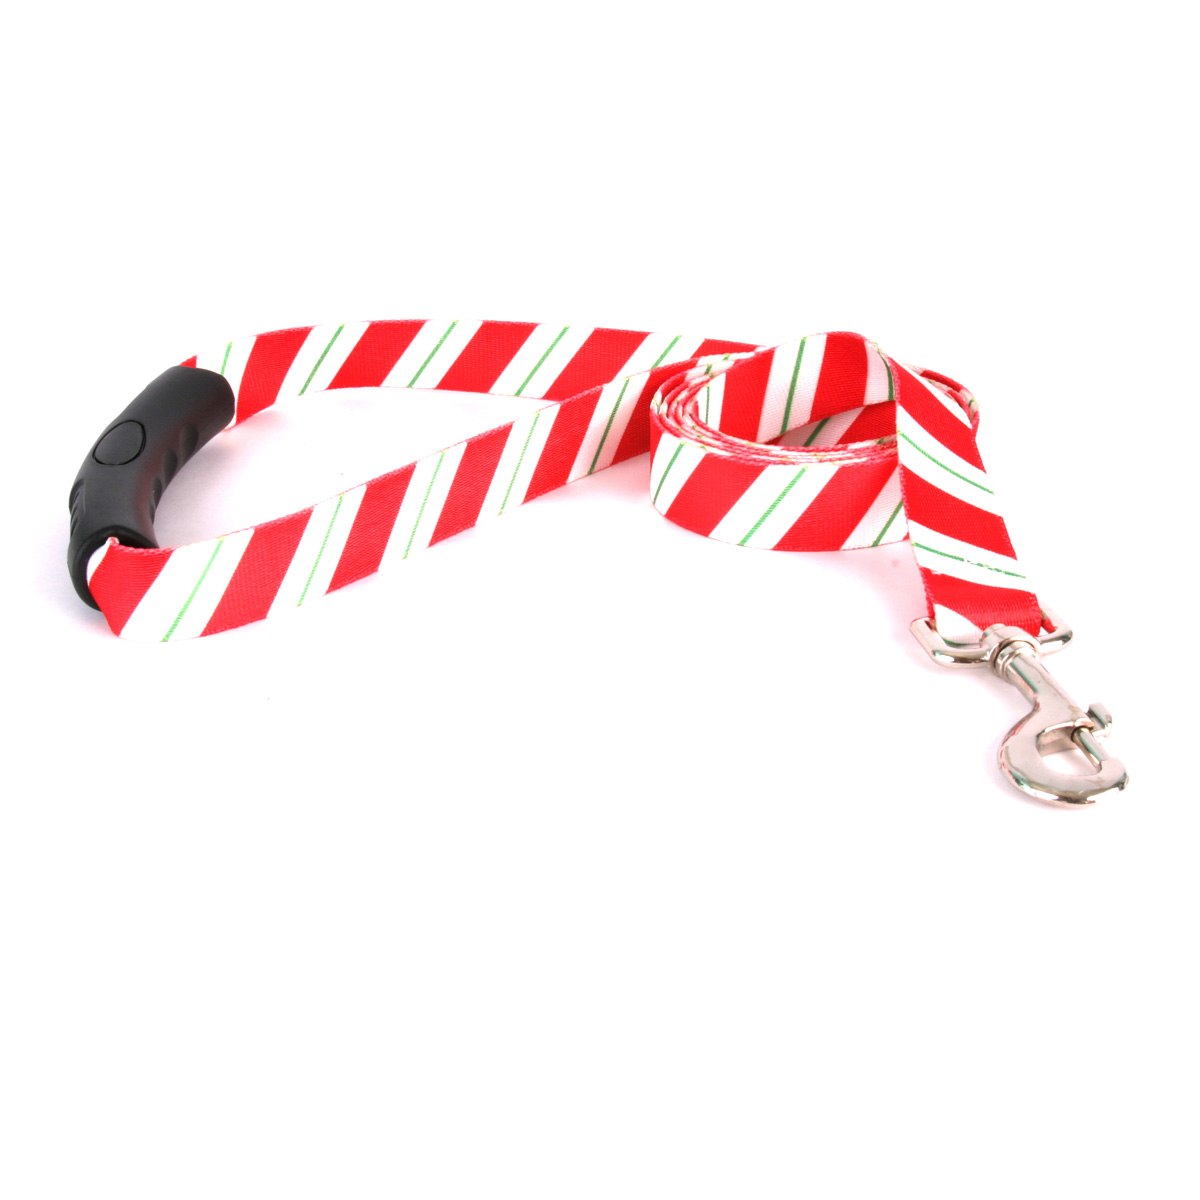 Peppermint Stick EZ-Lead